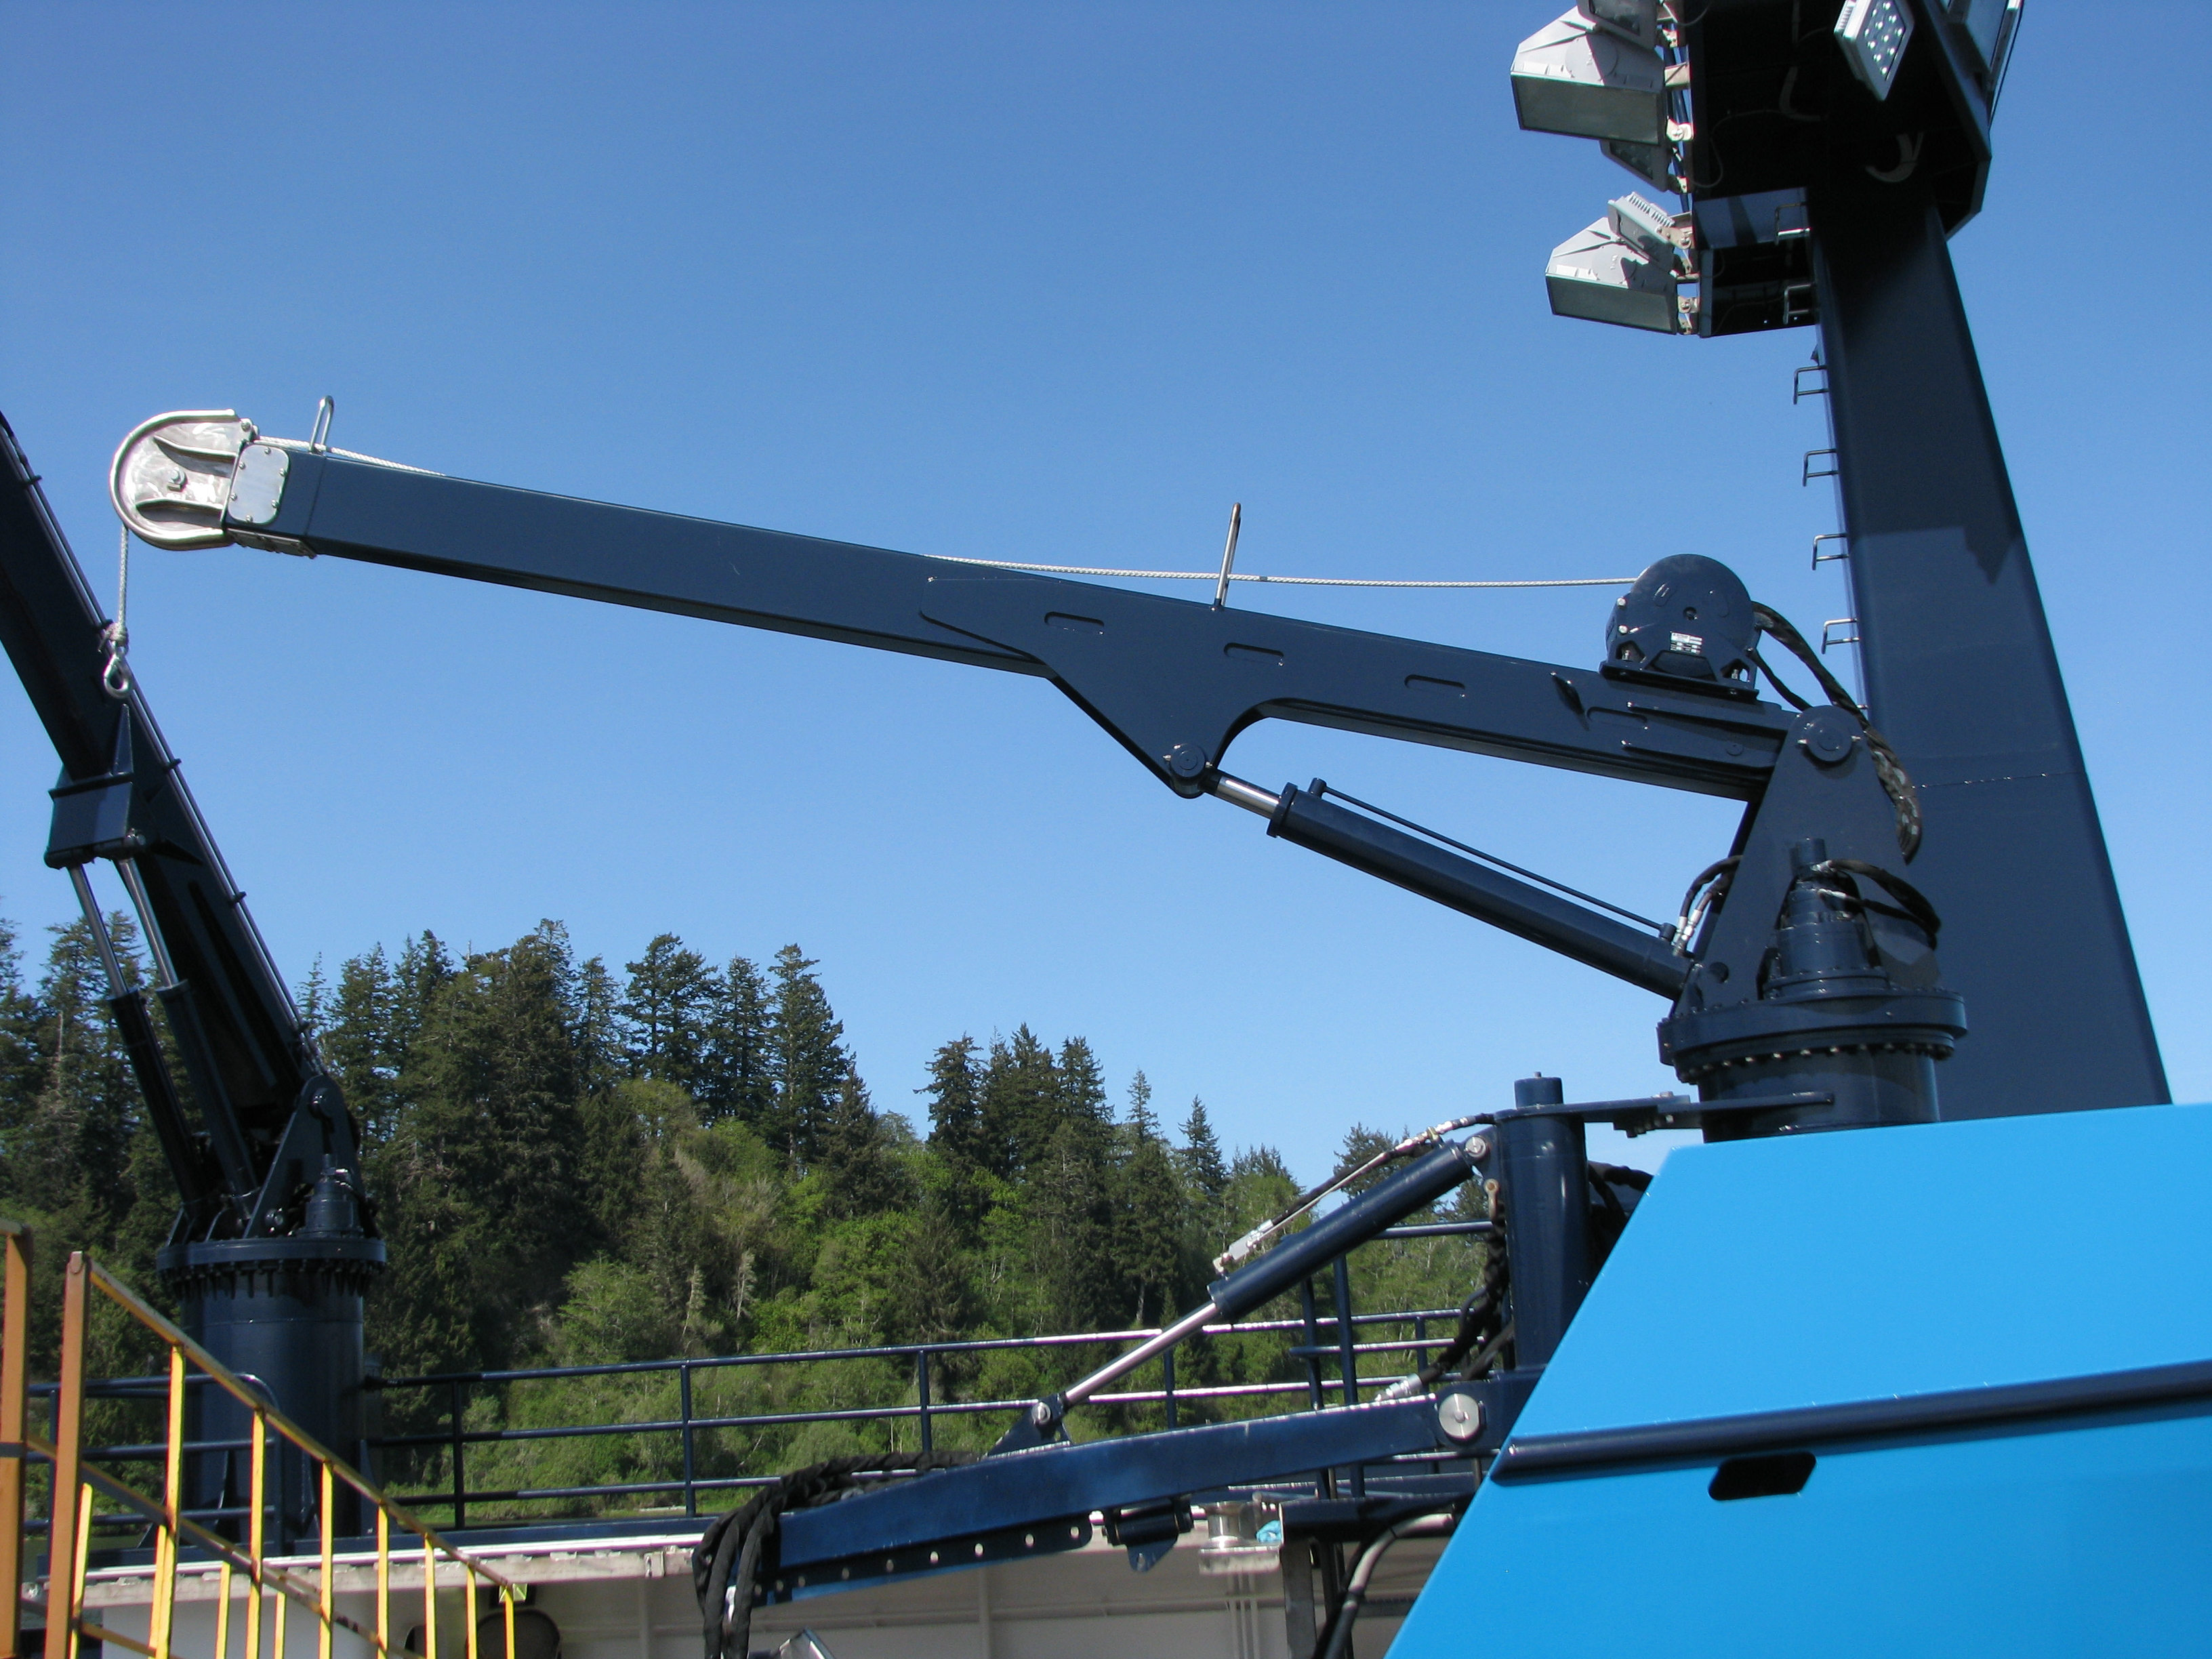 26-FOOT TELESCOPING BOOM CRANE